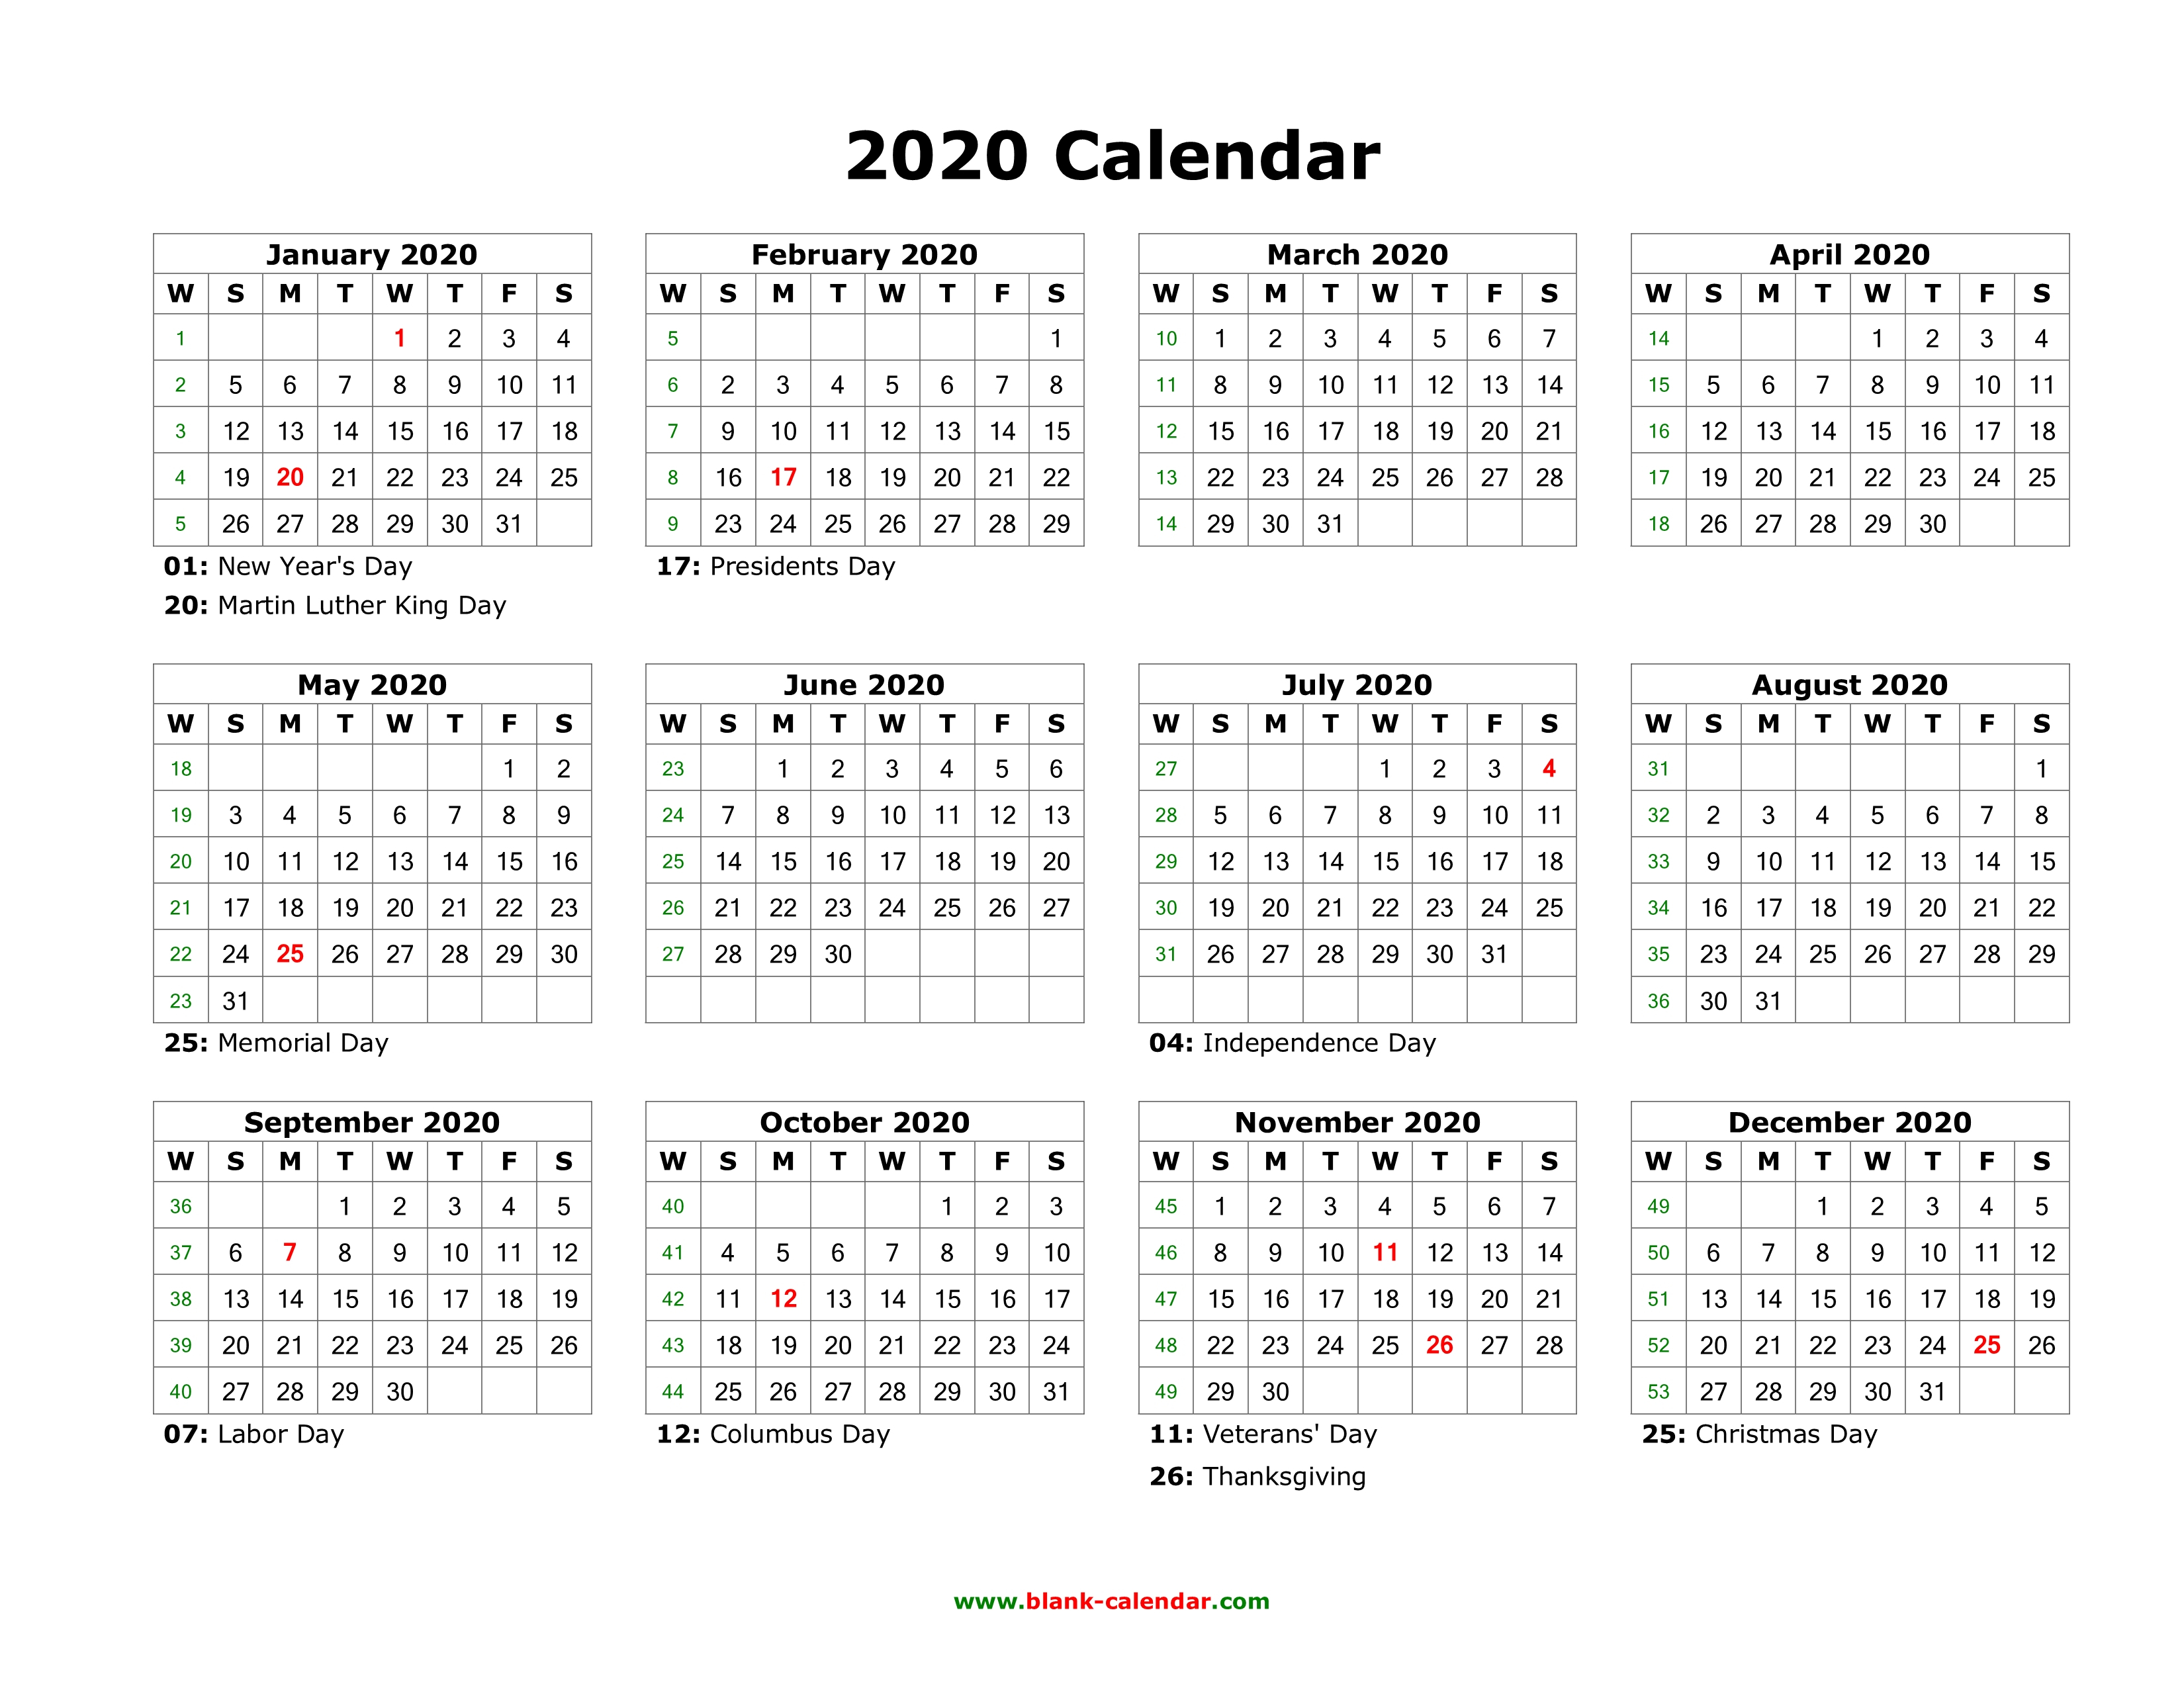 Blank Calendar 2020 | Free Download Calendar Templates with 2020 Calendars That You Can Edit